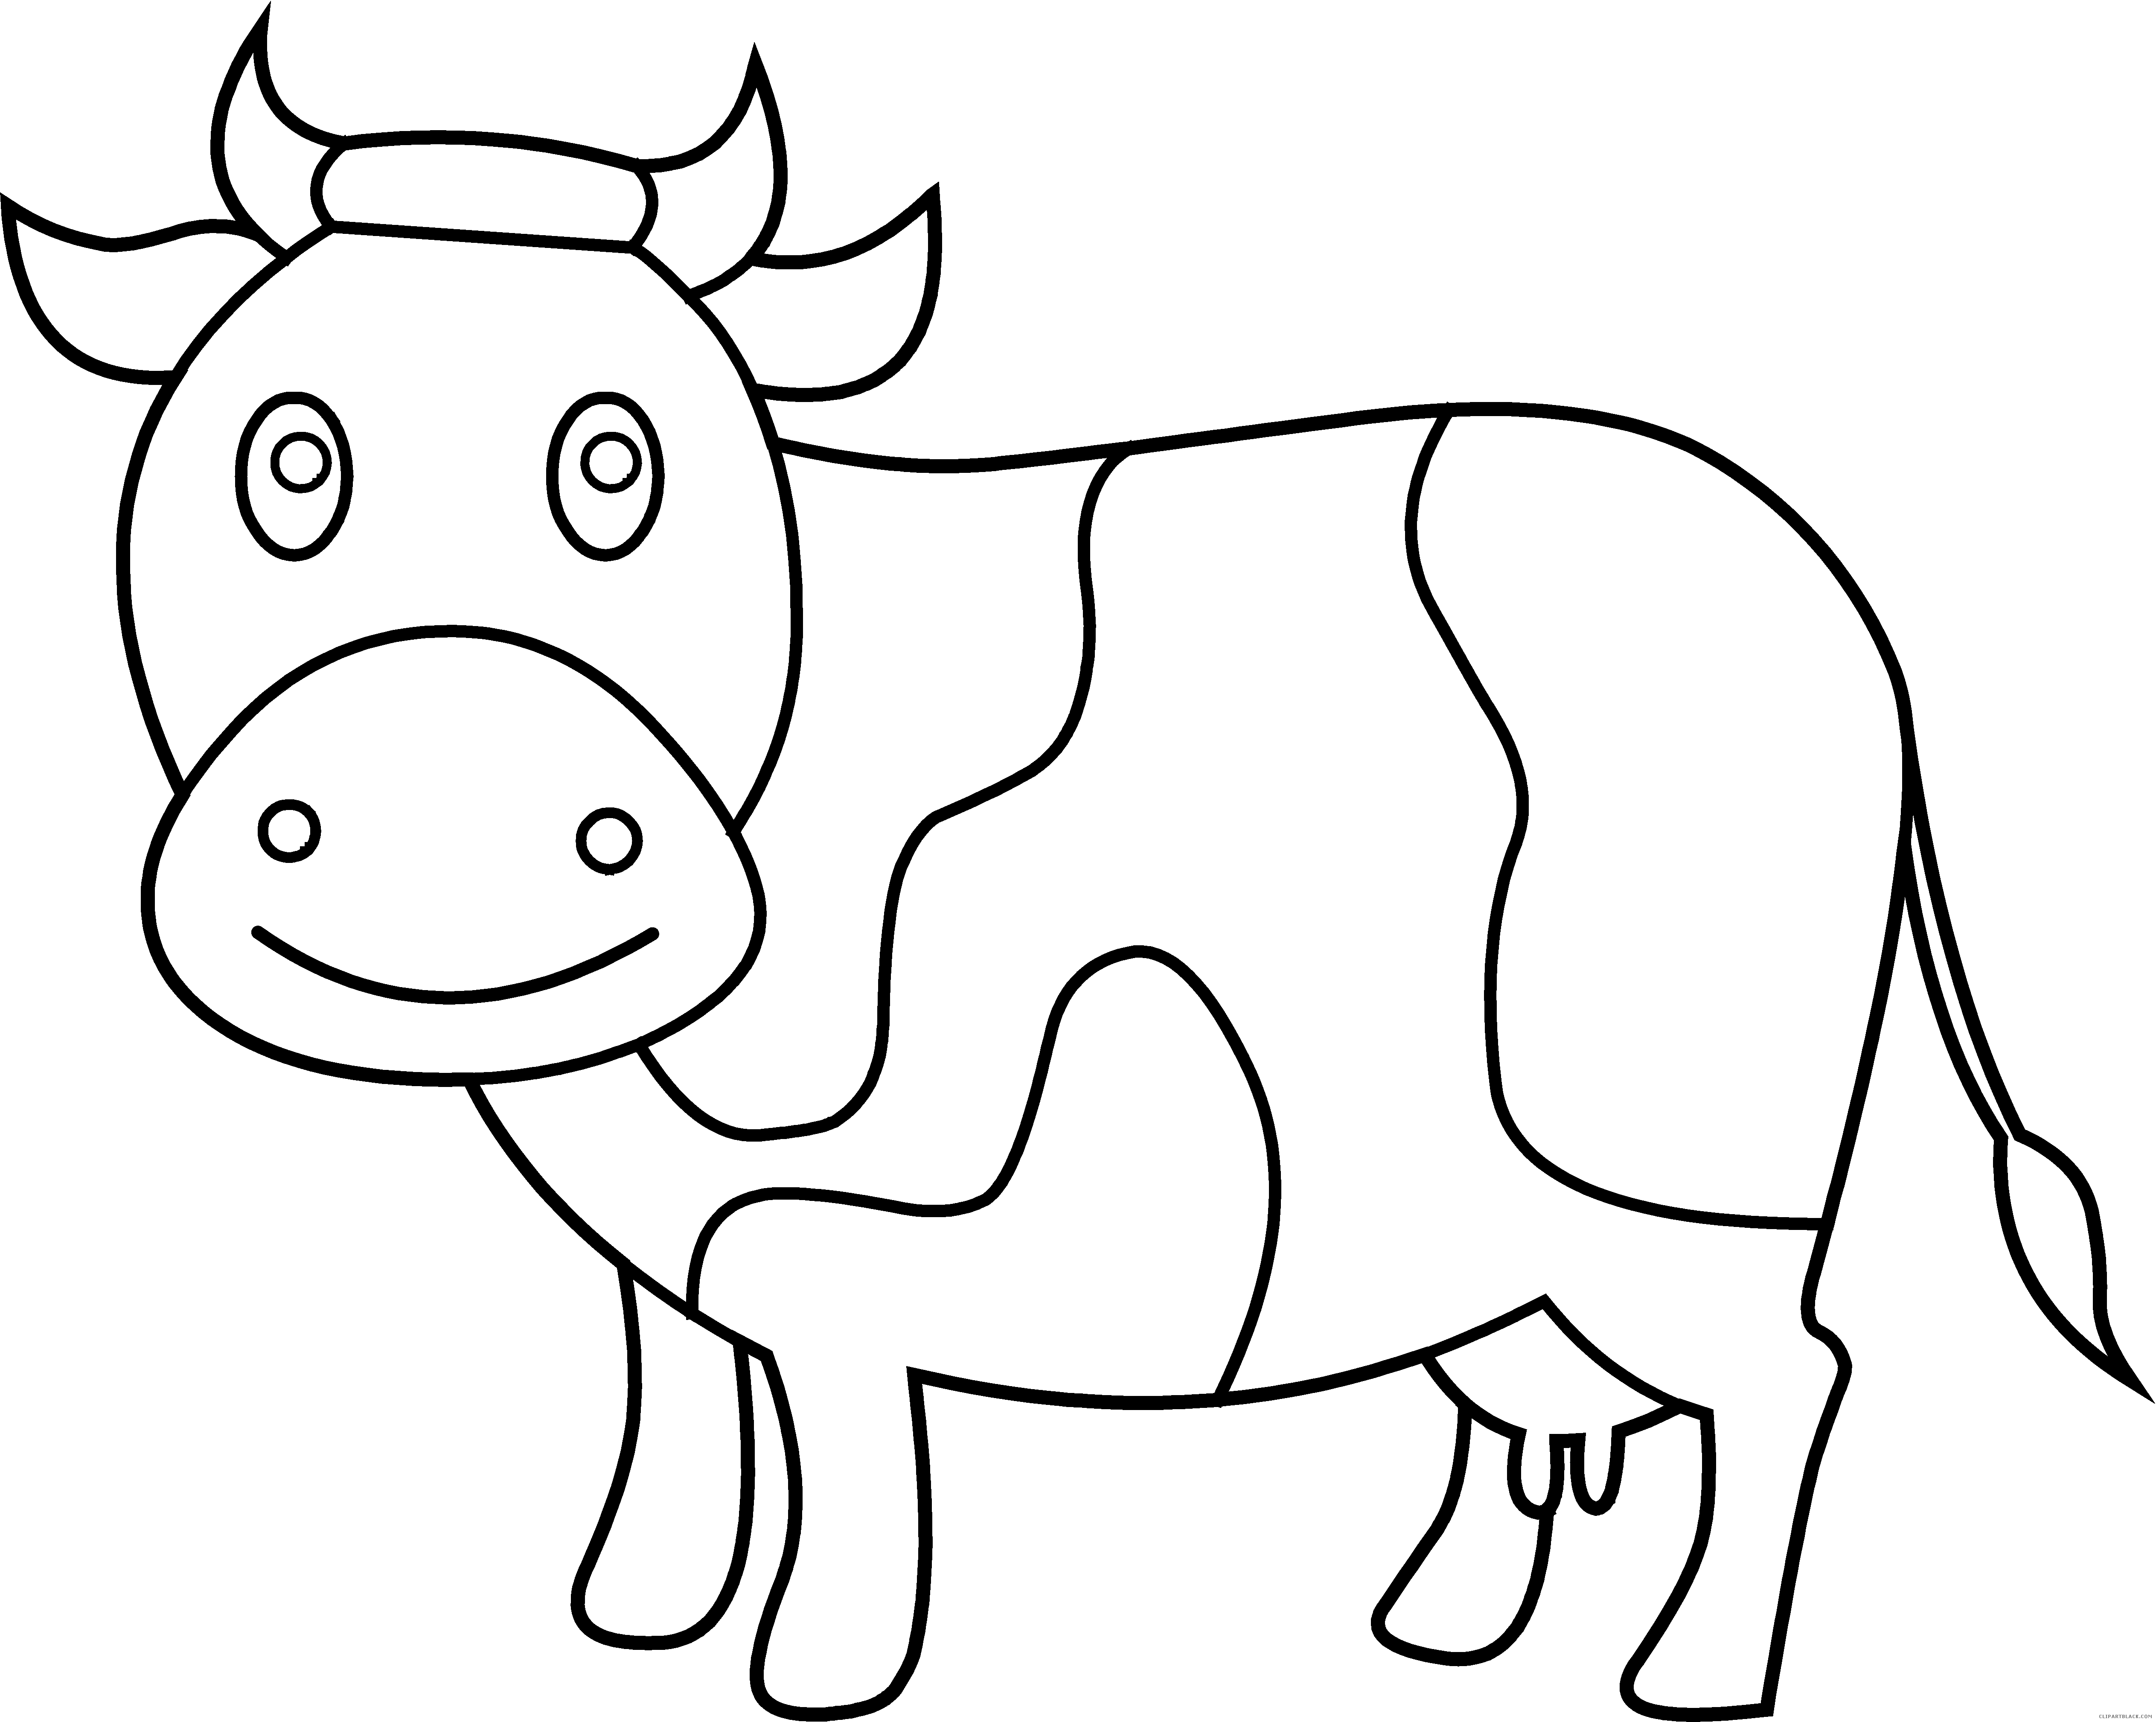 Cow clipart black and white. Page of clipartblack com